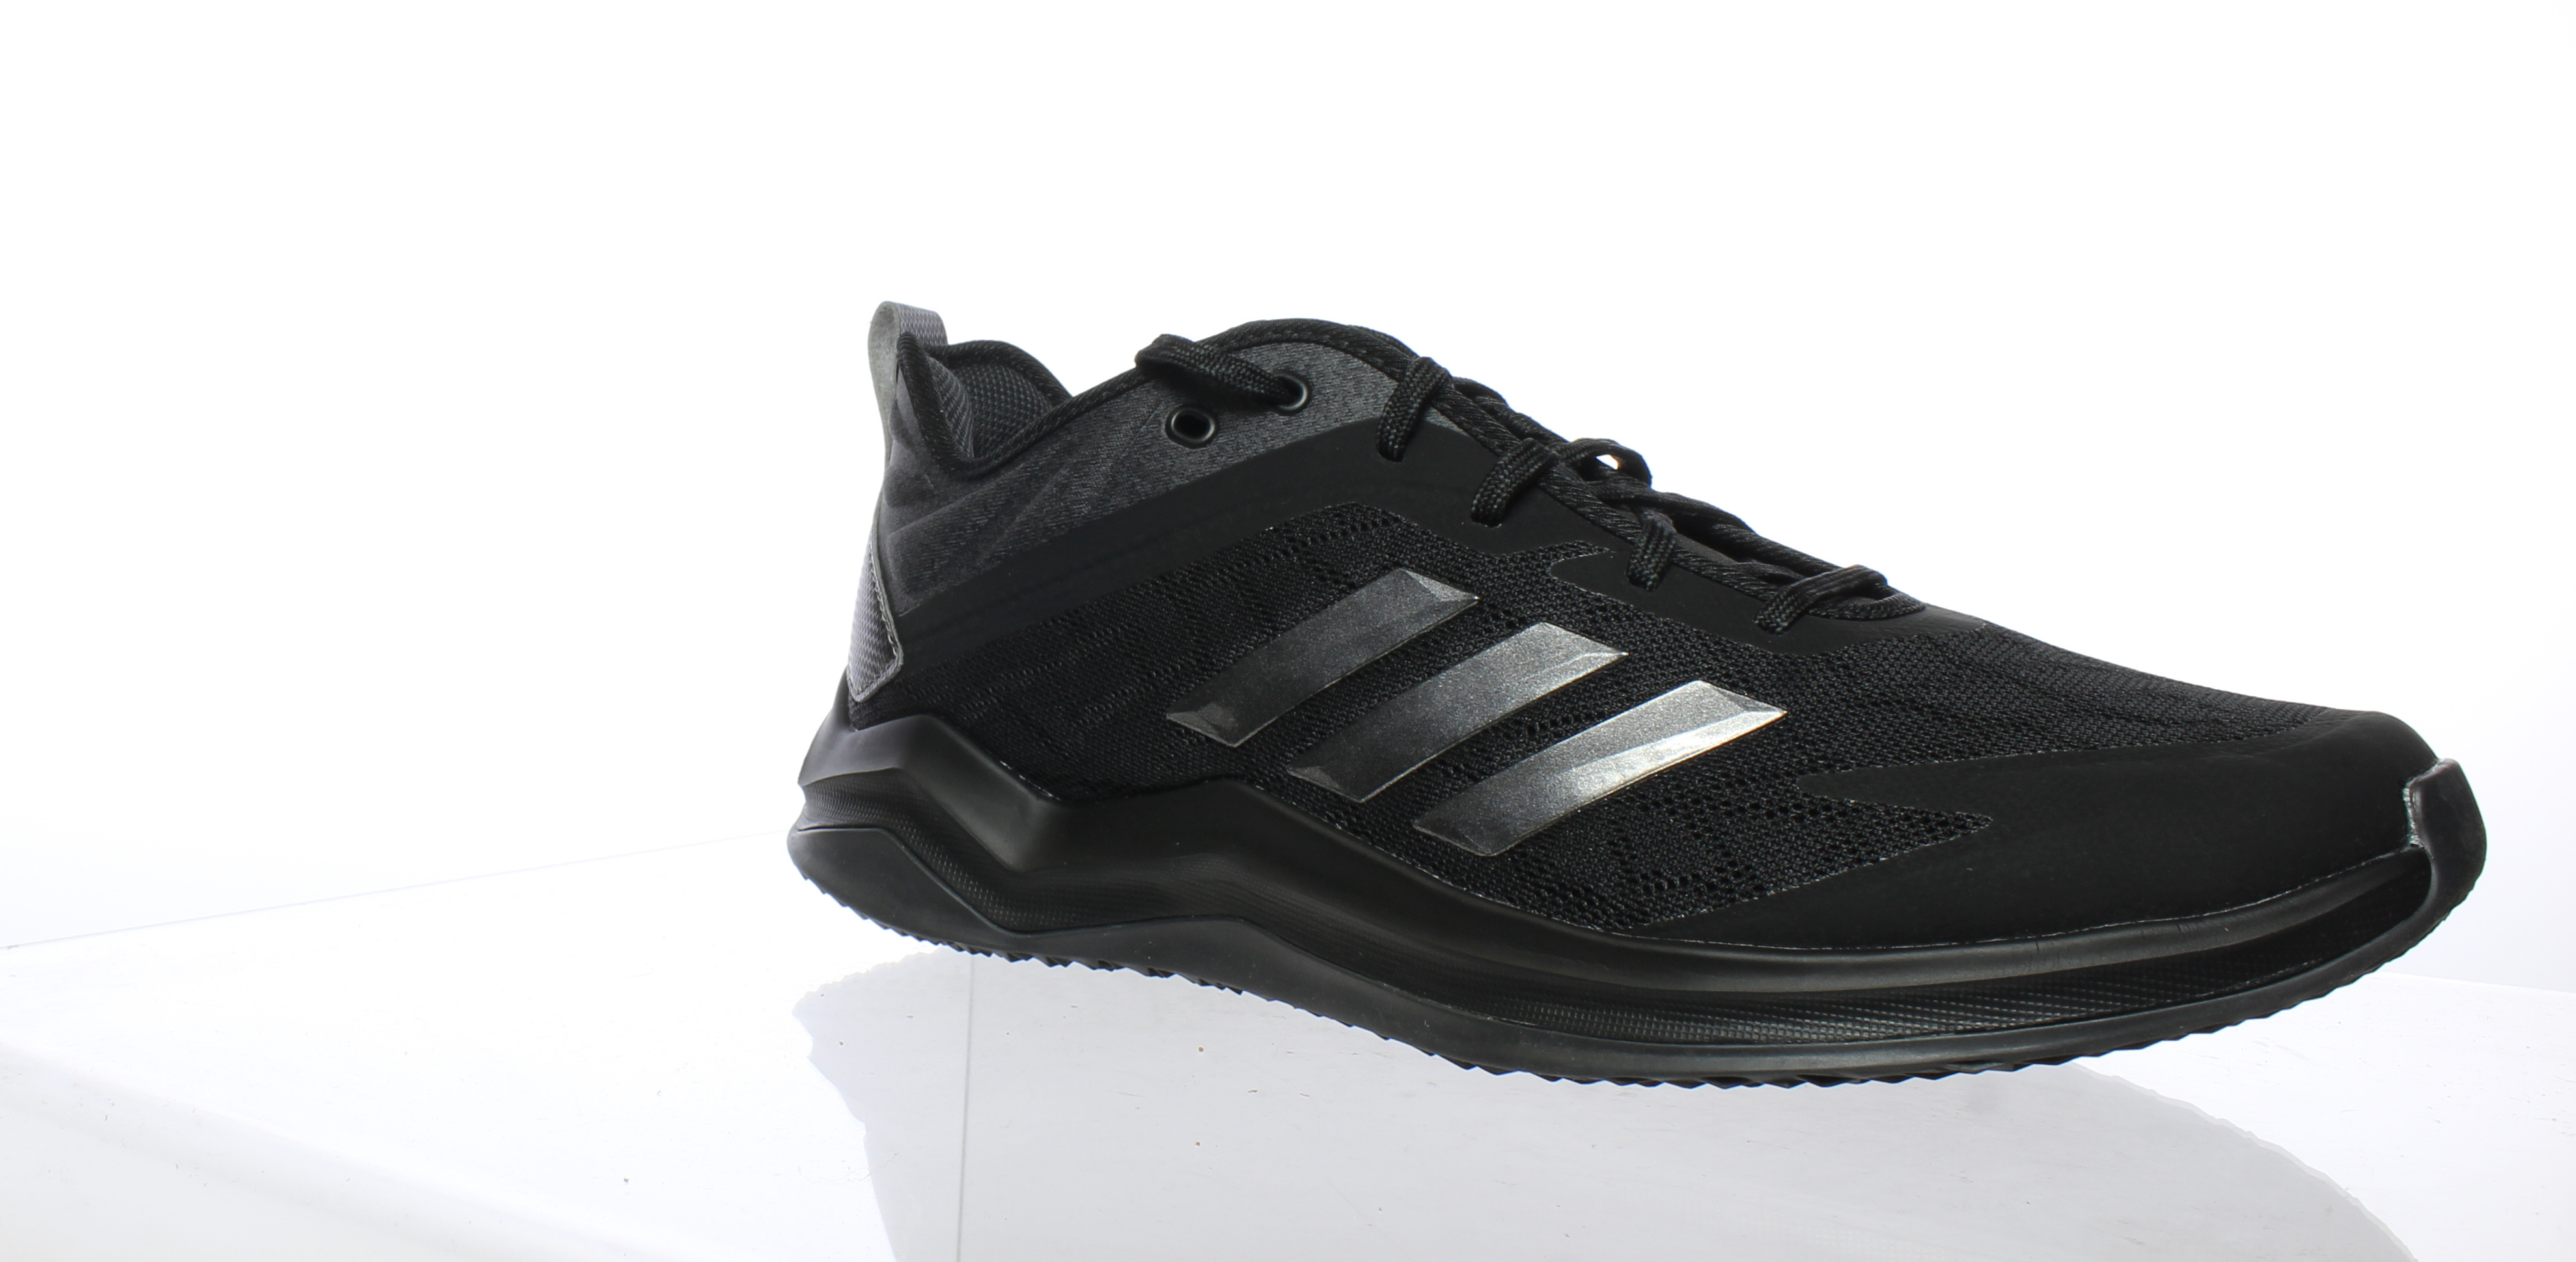 Adidas Mens Speed Trainer 4 Black Running shoes Size 10 (240906)